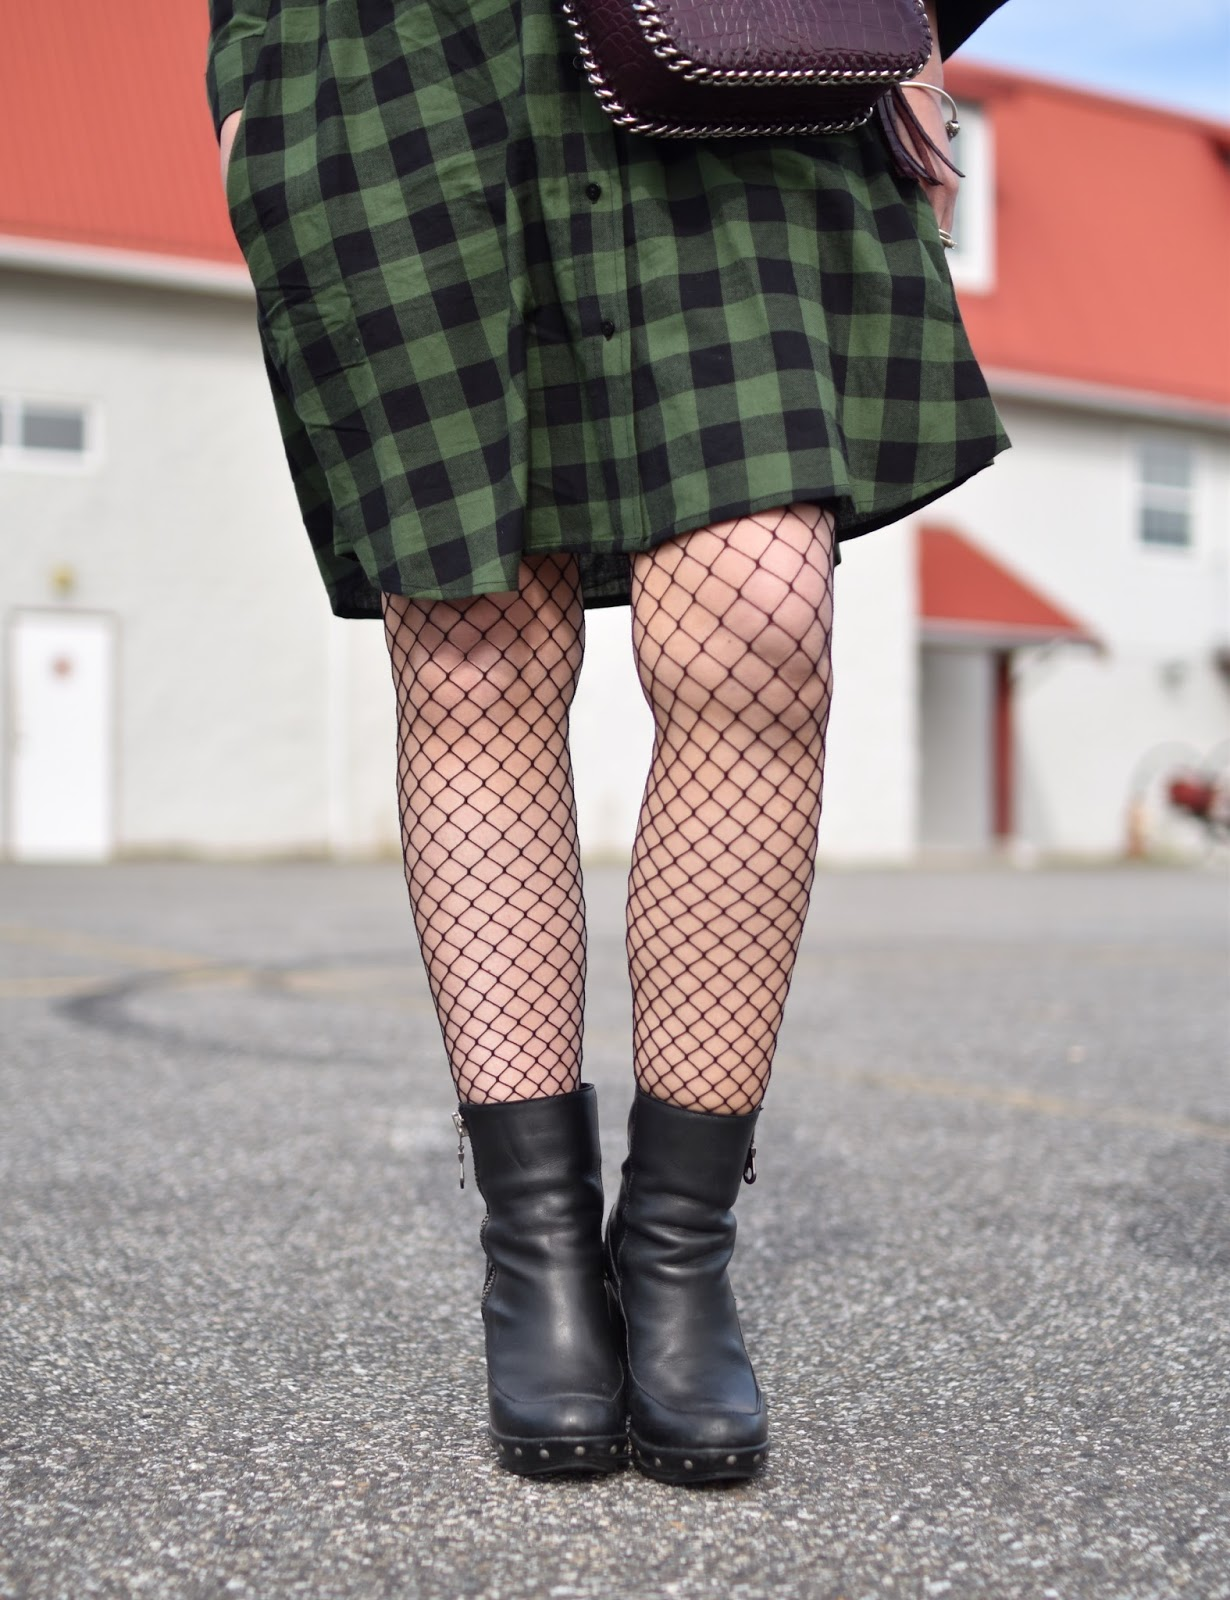 Outfit inspiration - plaid flannel shirtdress, fishnet tights, platform booties